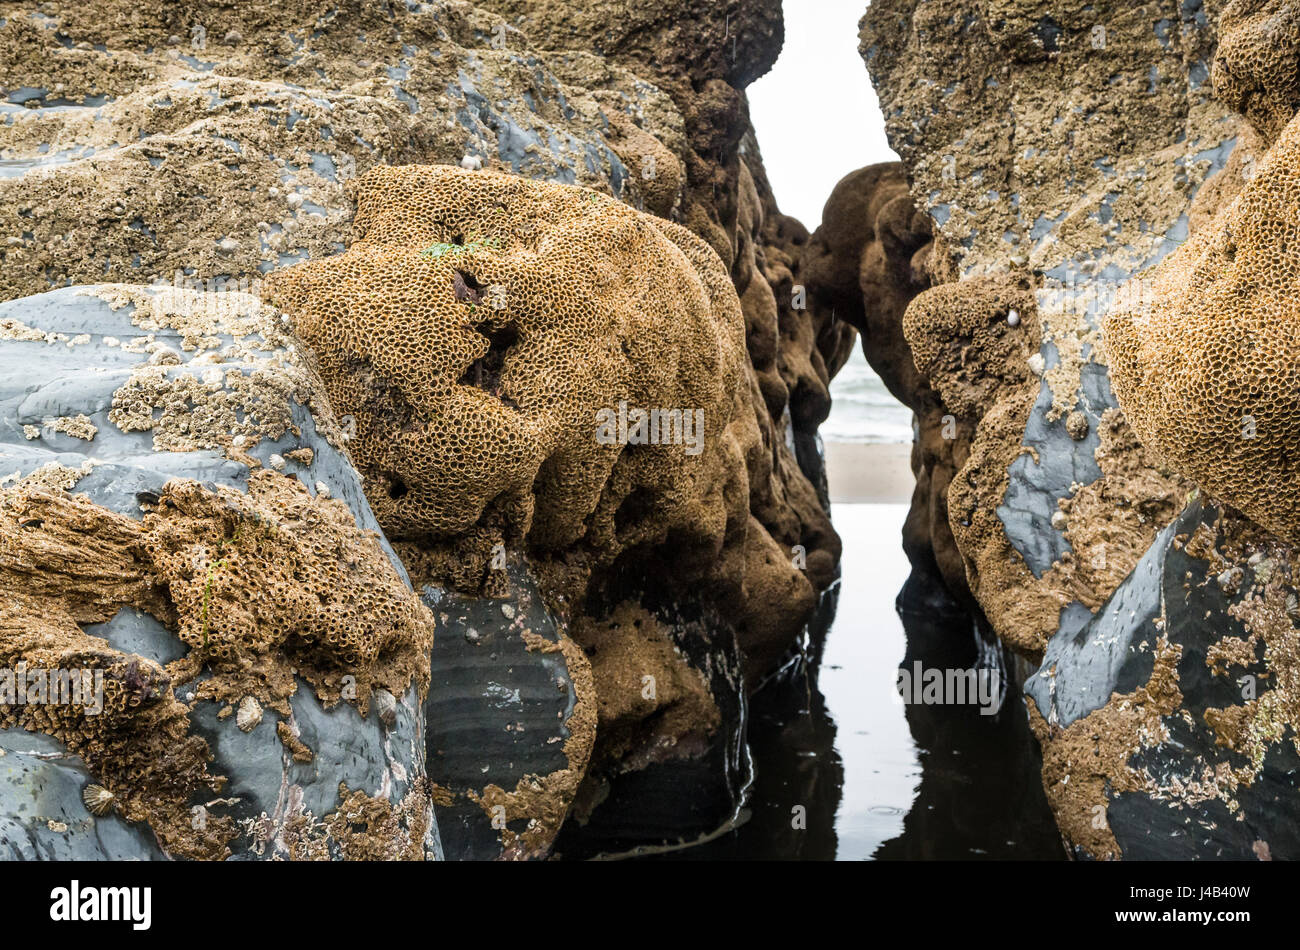 Rocks covered in barnacles (many empty shells) on the beach, Wales UK - Stock Image